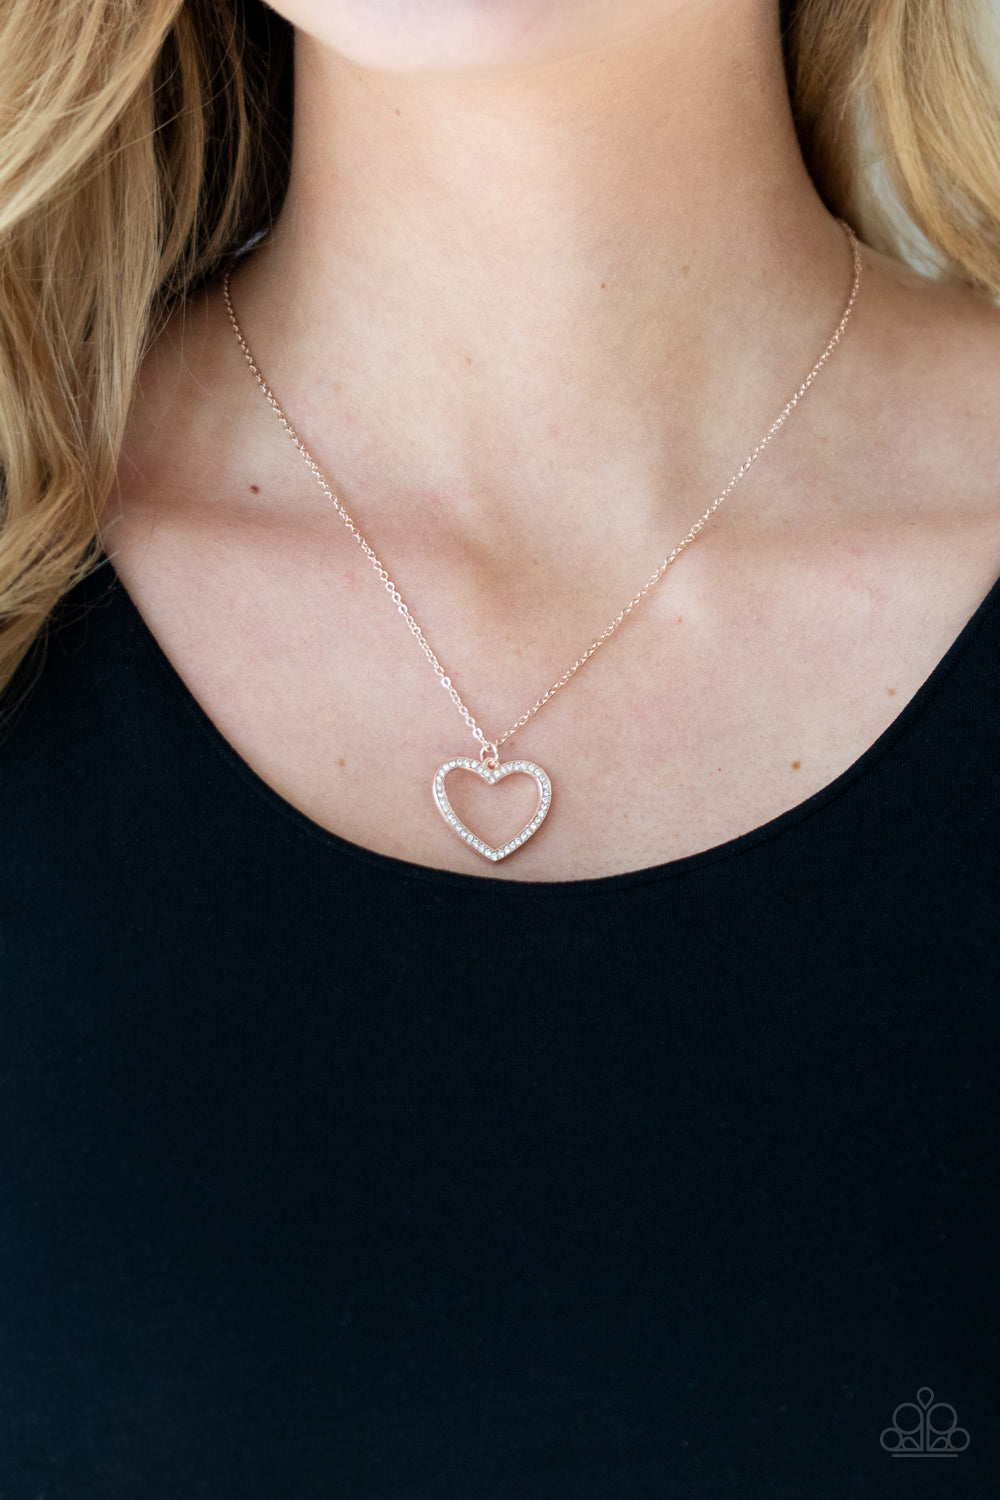 GLOW by Heart - Rose Gold Necklace - Paparazzi Accessories